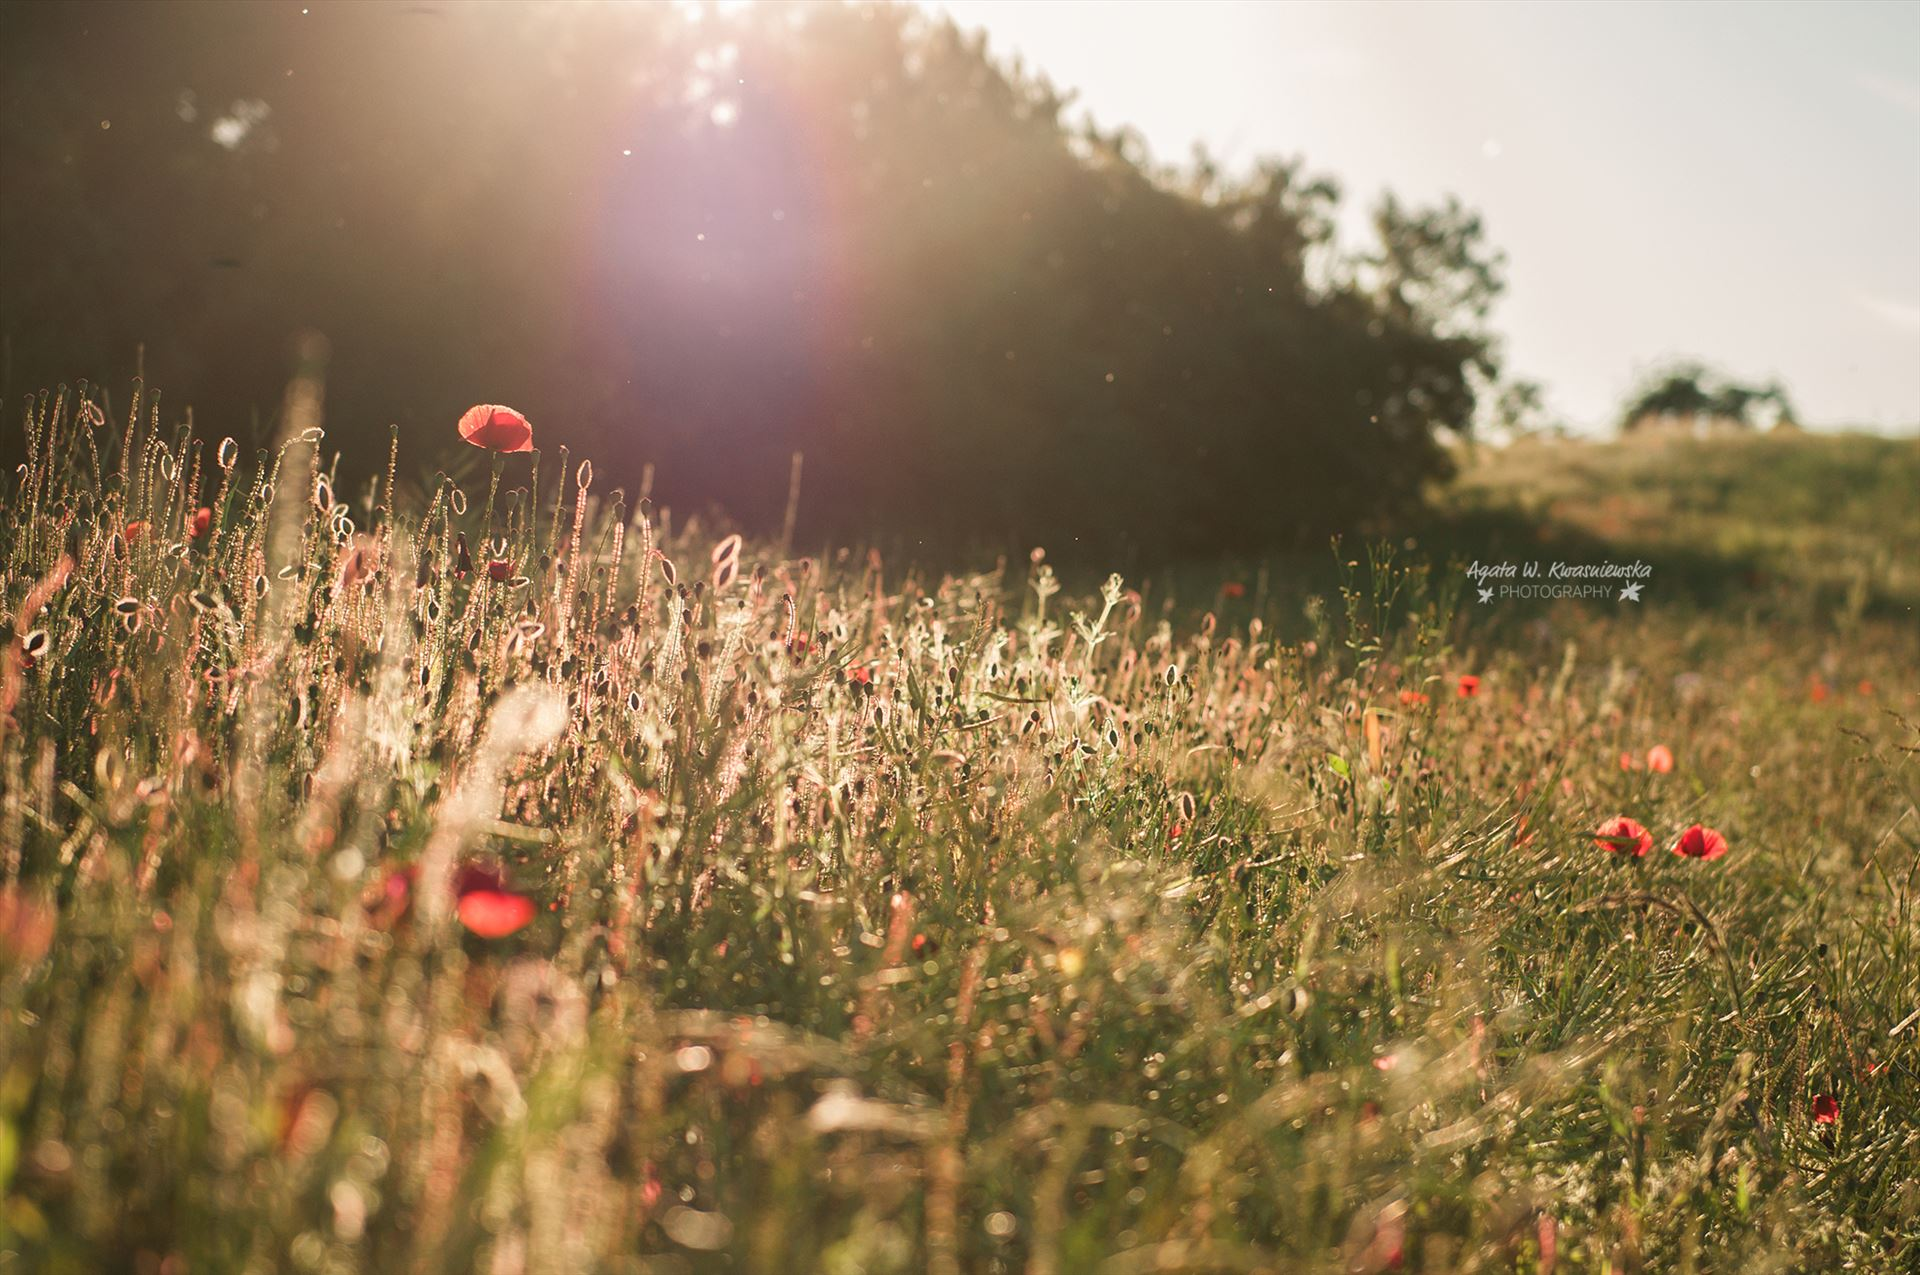 A meadow with poppies -  by Agata W. Kwasniewska Photography